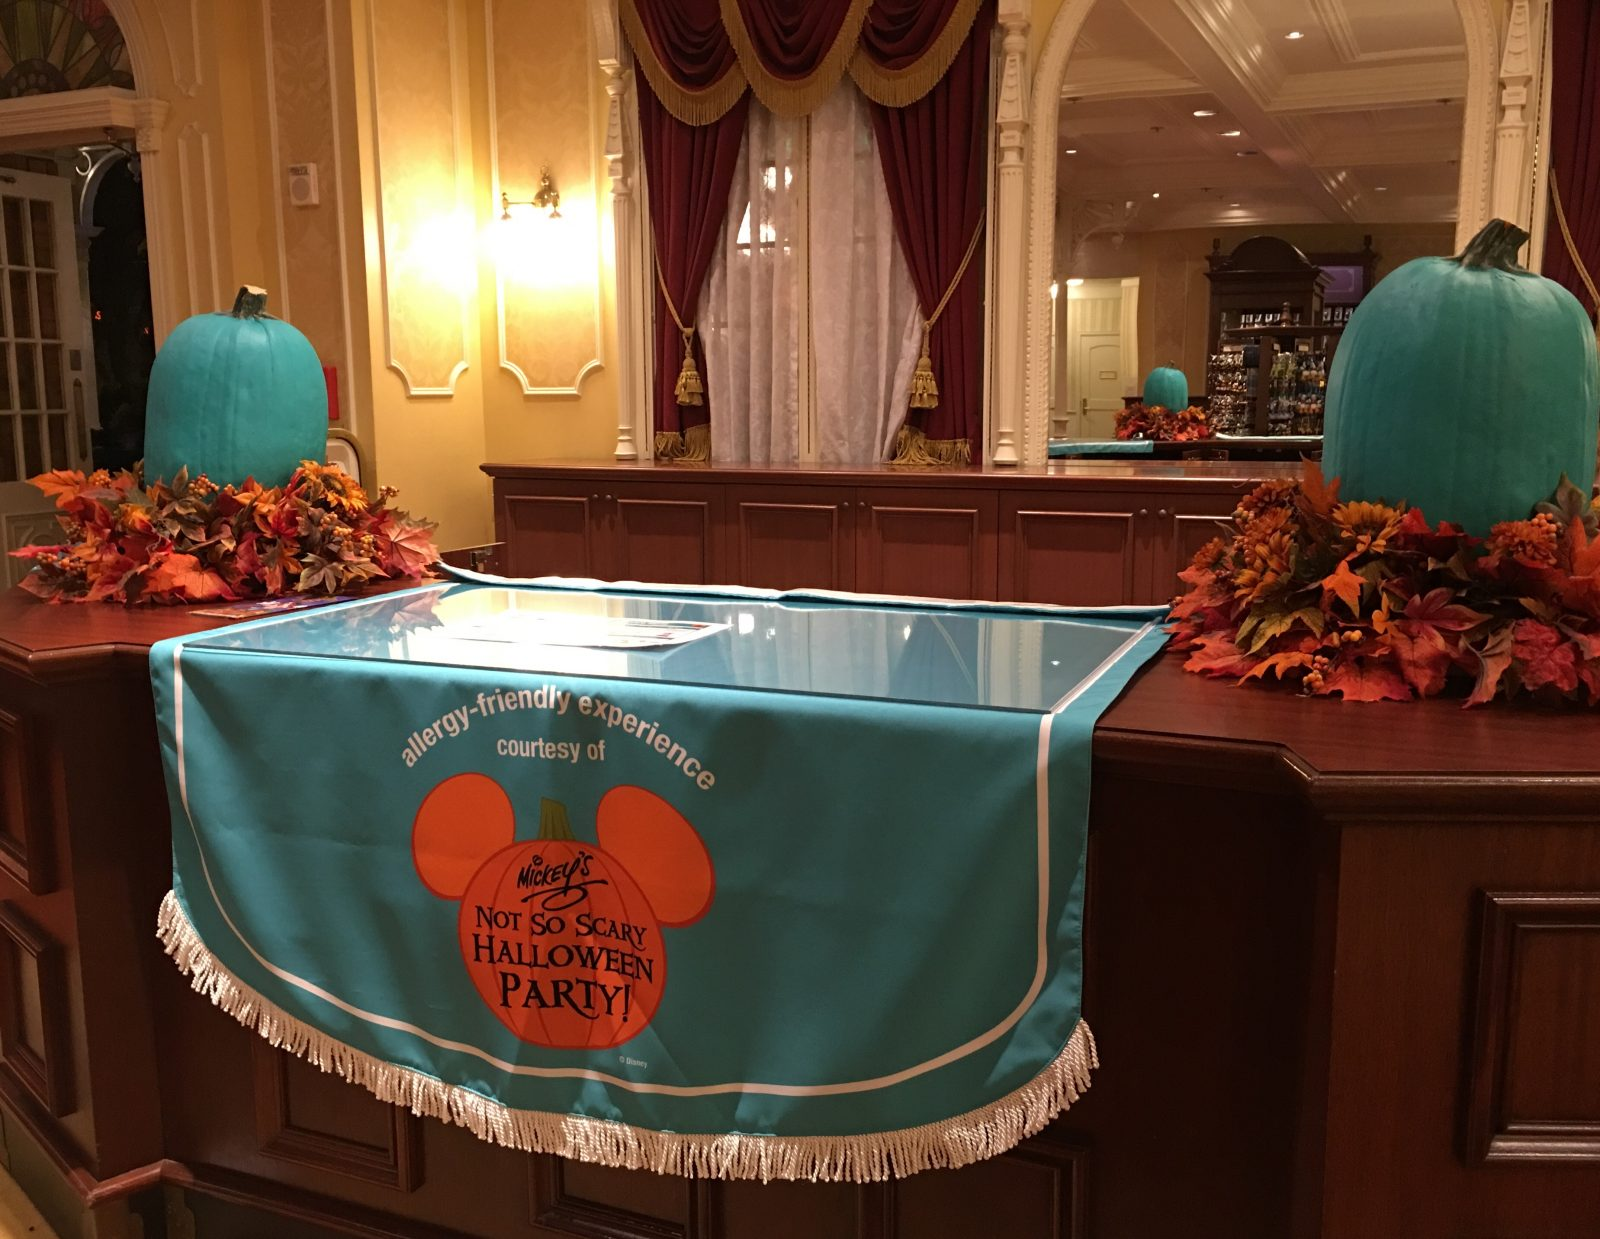 Mickey's Not So Scary Halloween Party 2016 - Allergy Friendly Experience - Town Square Theater Allergy Location